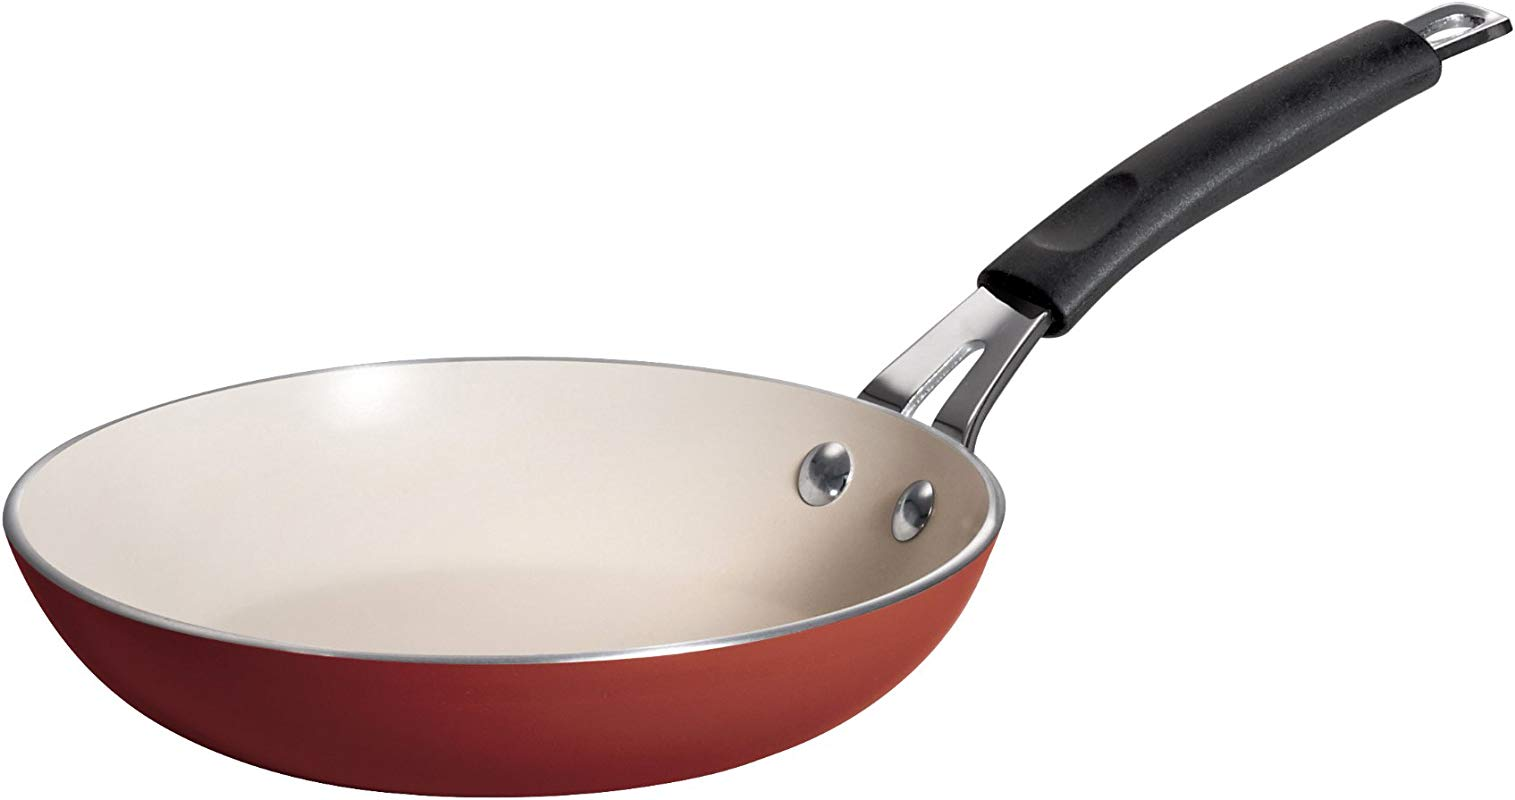 Tramontina 80151 053DS Style Simple Cooking Heavy Gauge Aluminum PFOA Free Nonstick Fry Pan 8 Inch Spice Red Made In USA